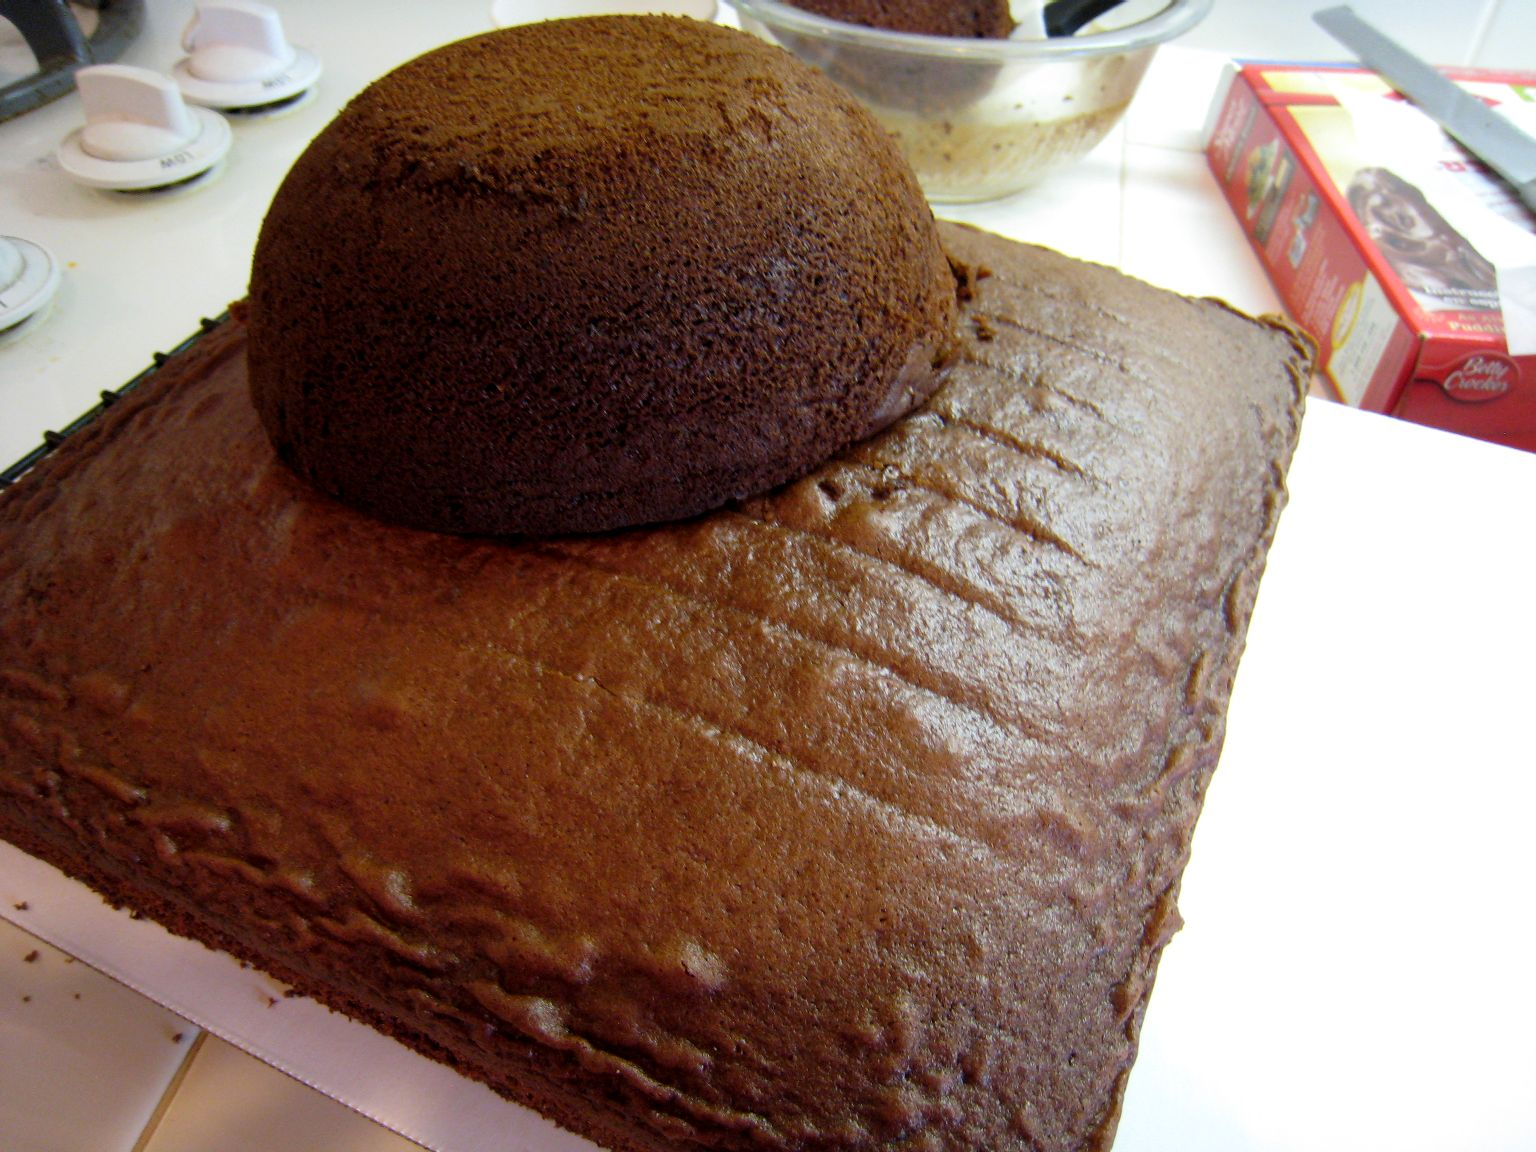 round cake stacked on square cake